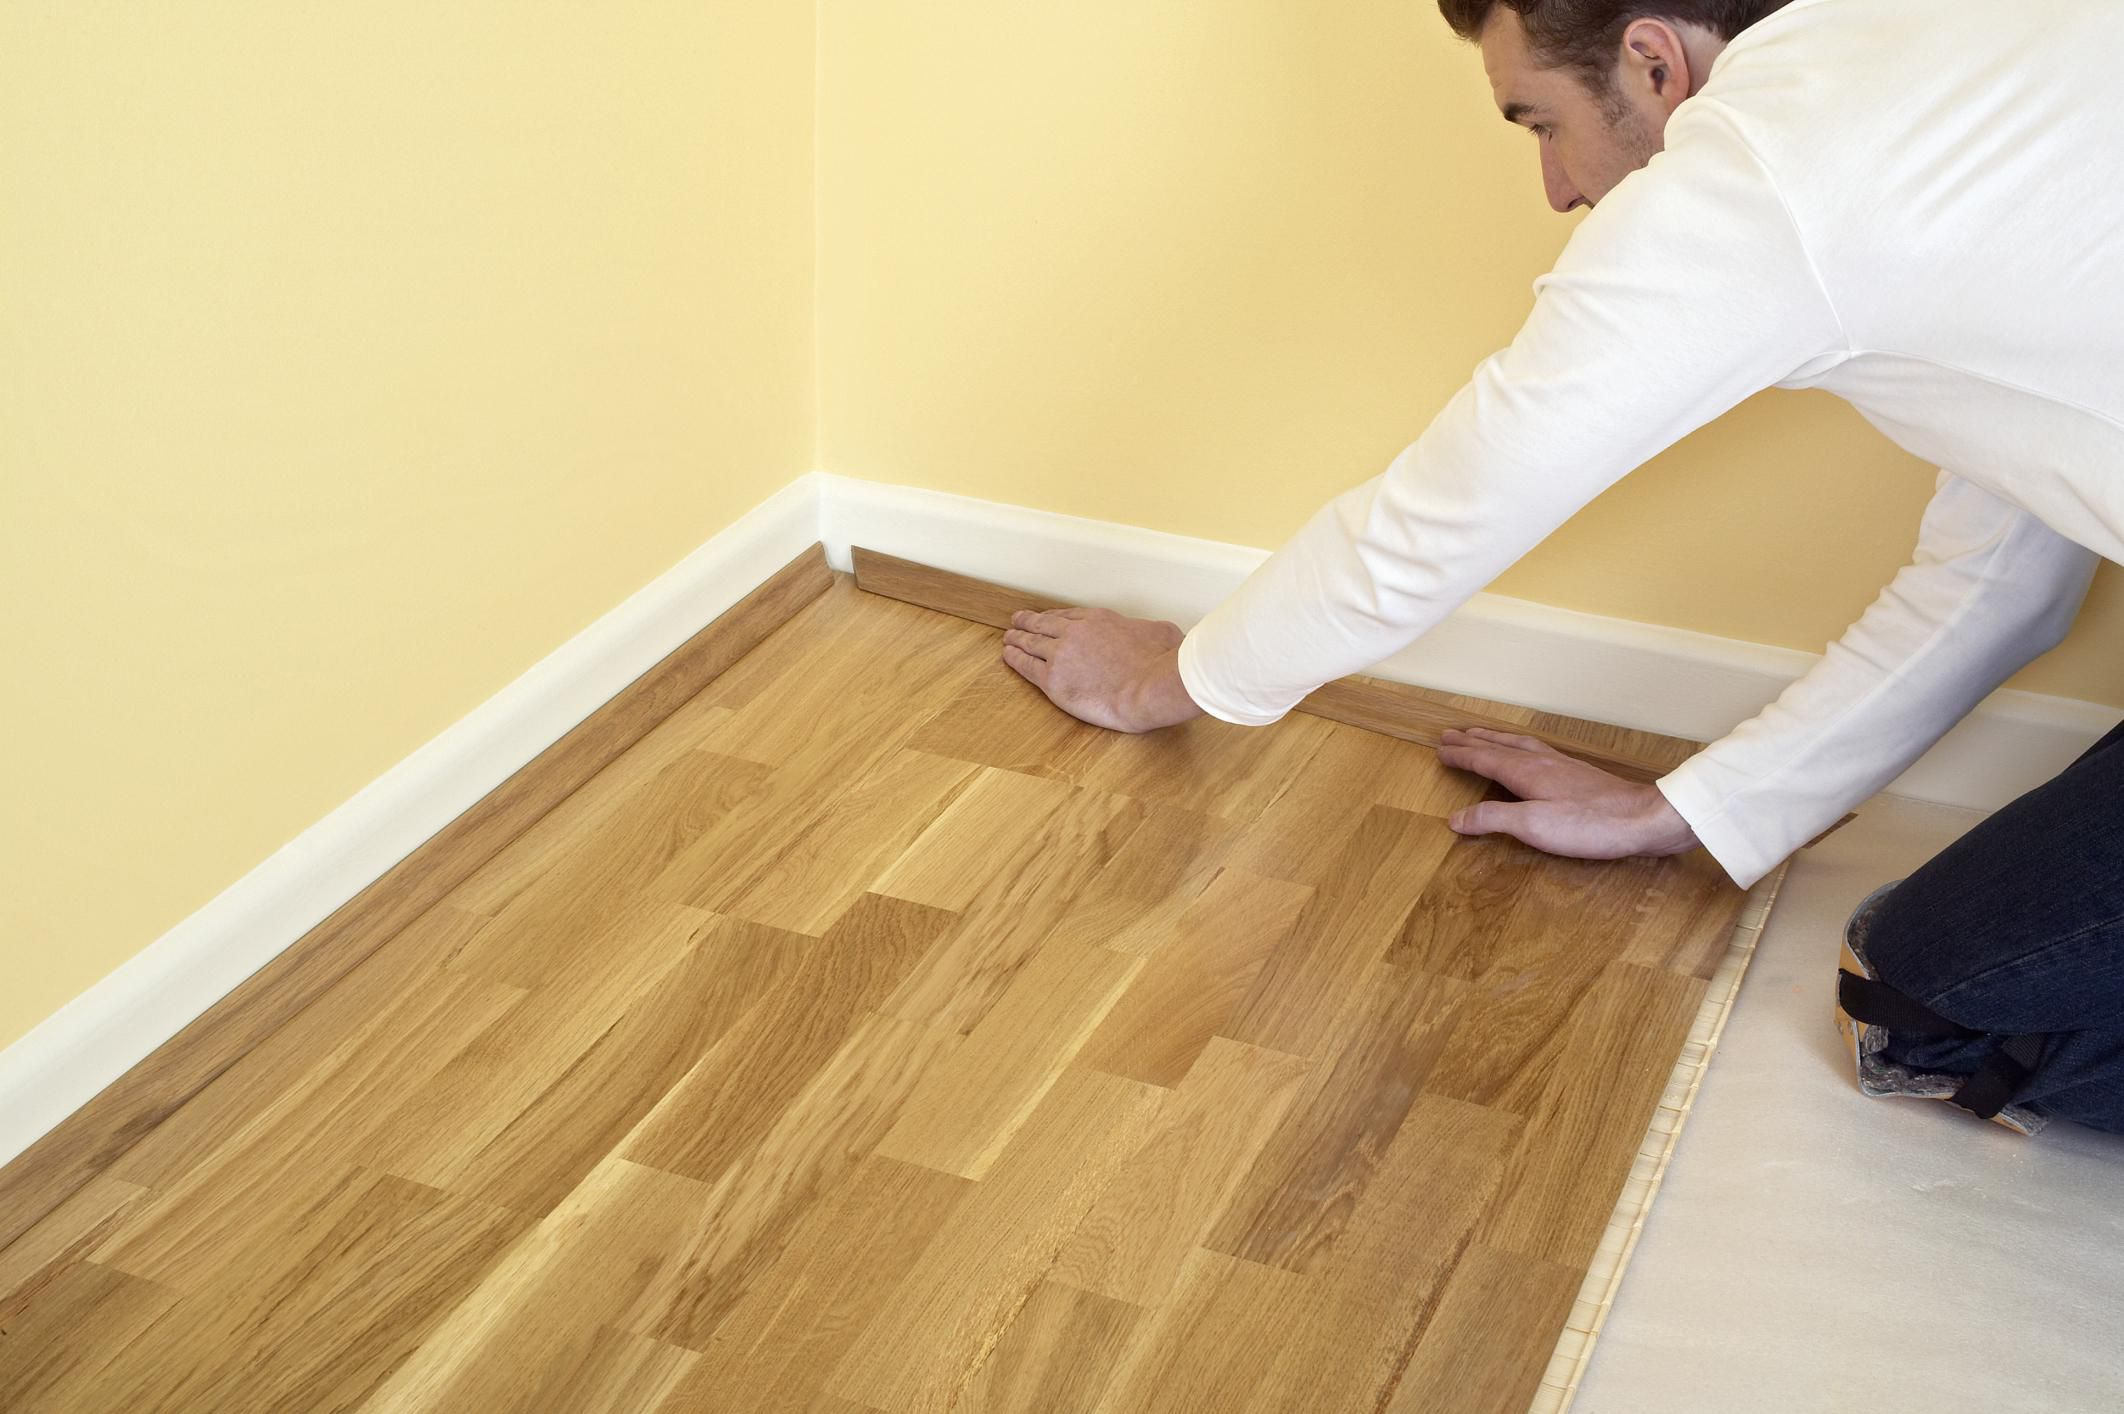 What's So Special About 12 mm Laminate Flooring?